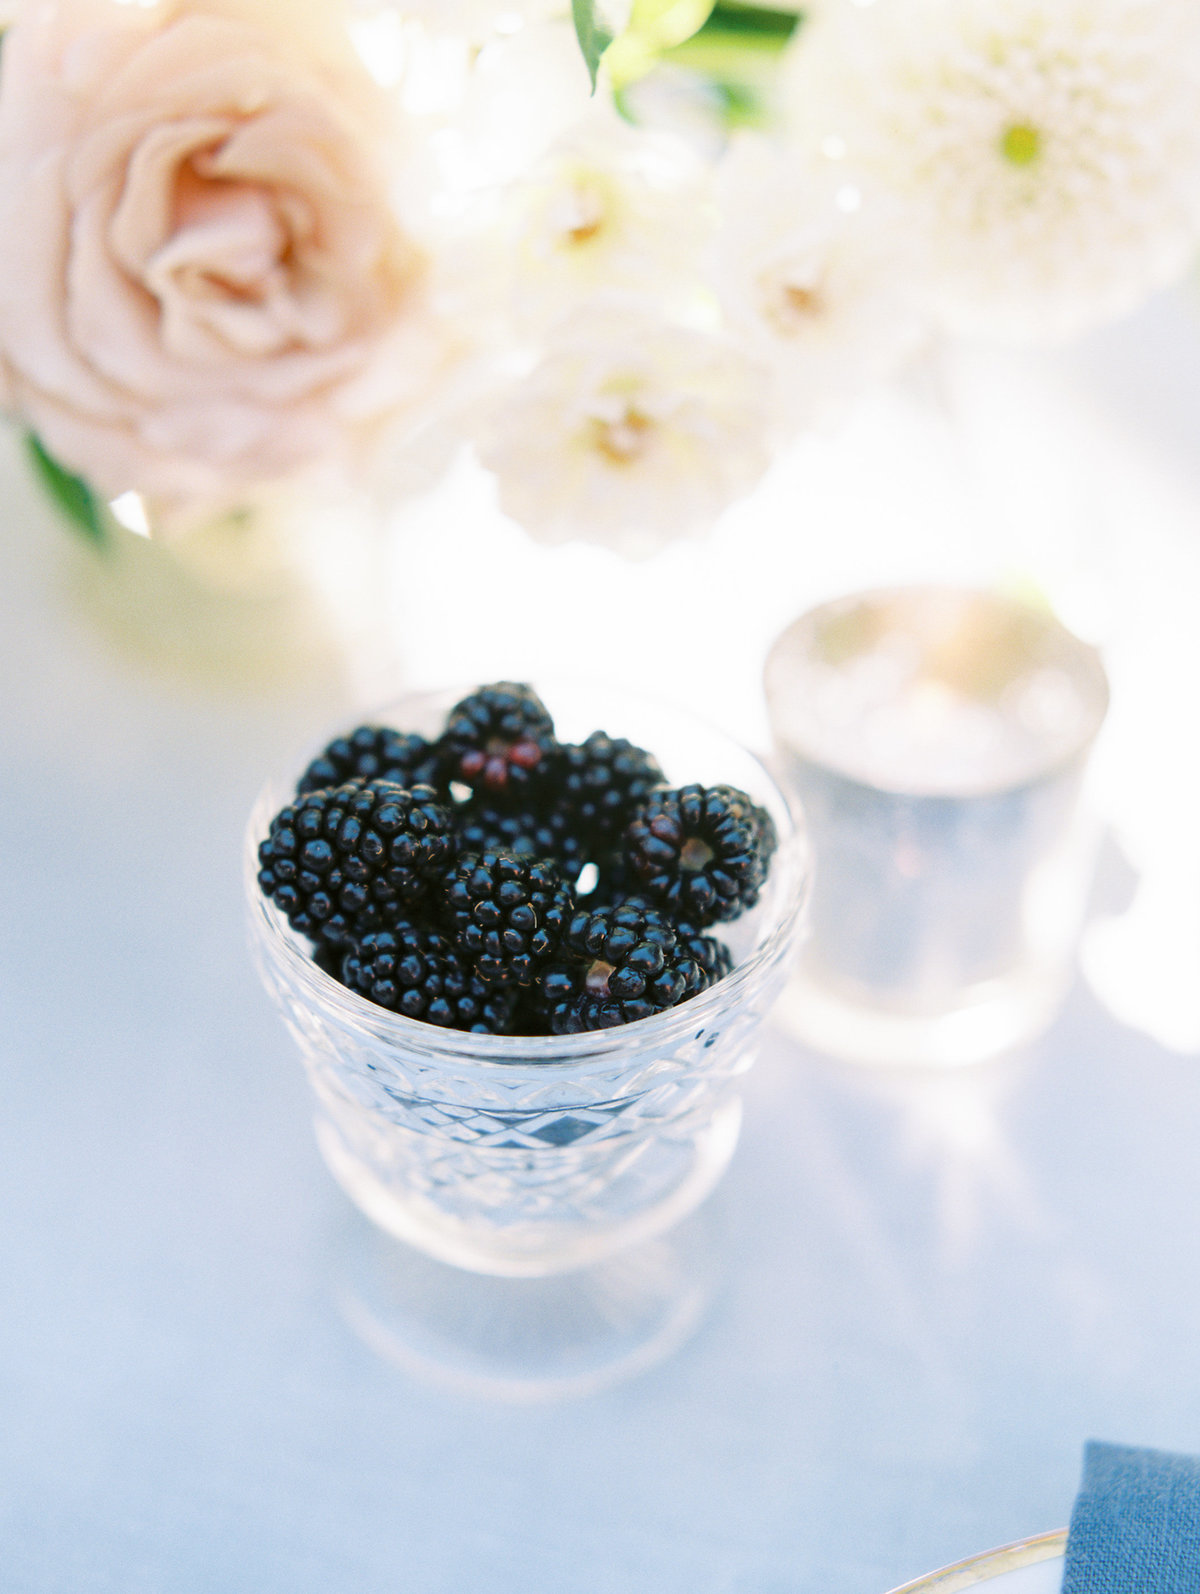 blackberries on the wedding reception table